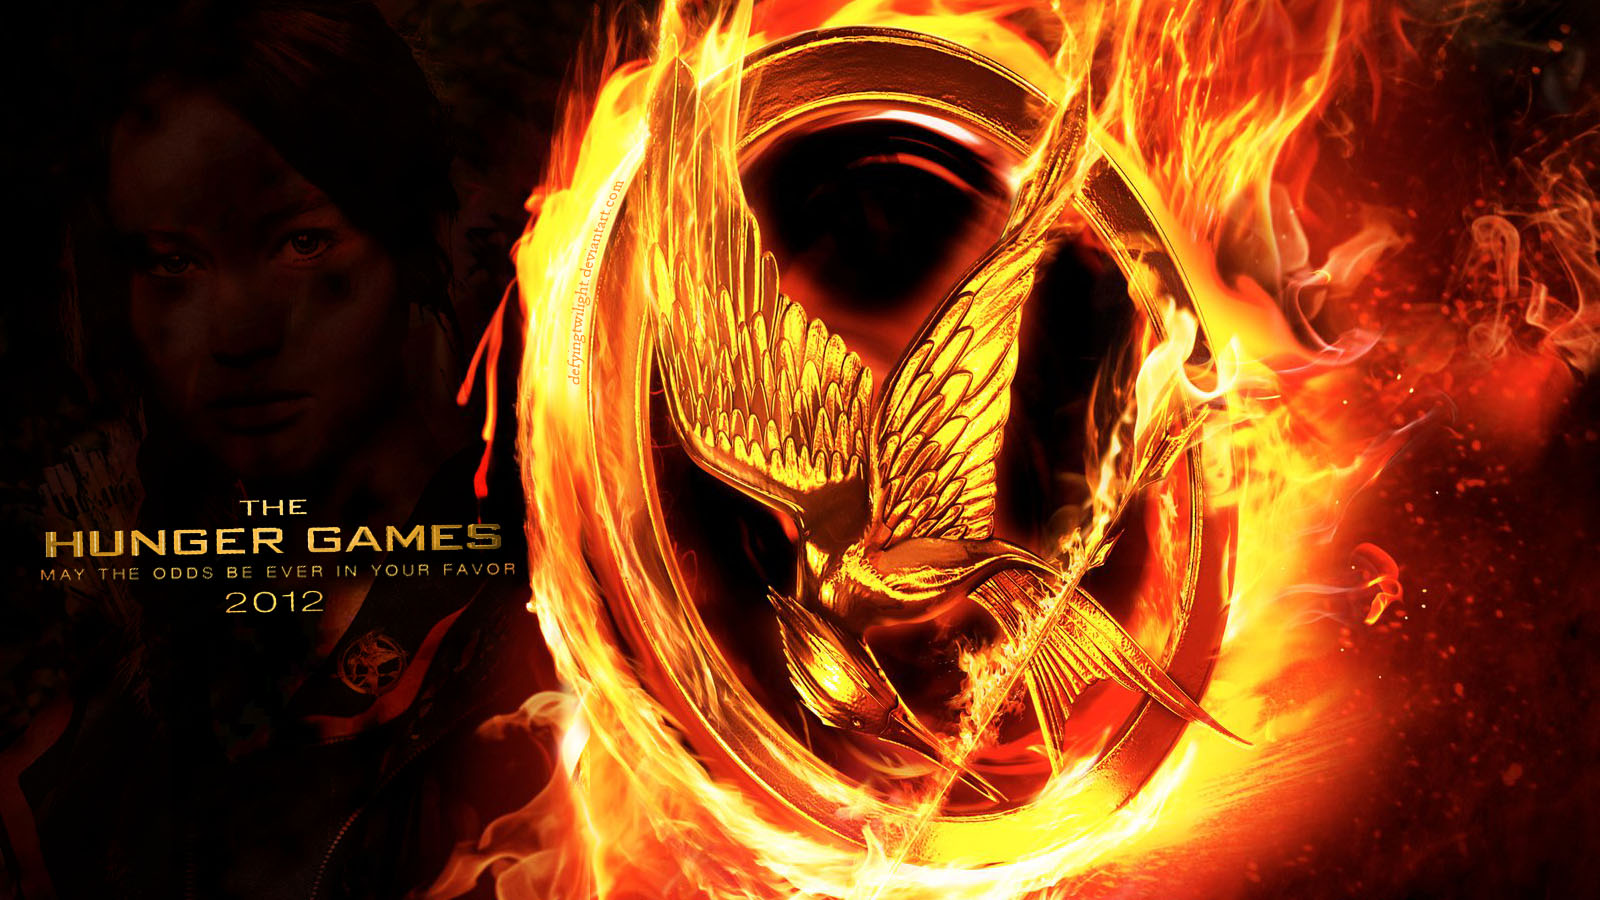 'The Hunger Games' Movie Poster پیپر وال